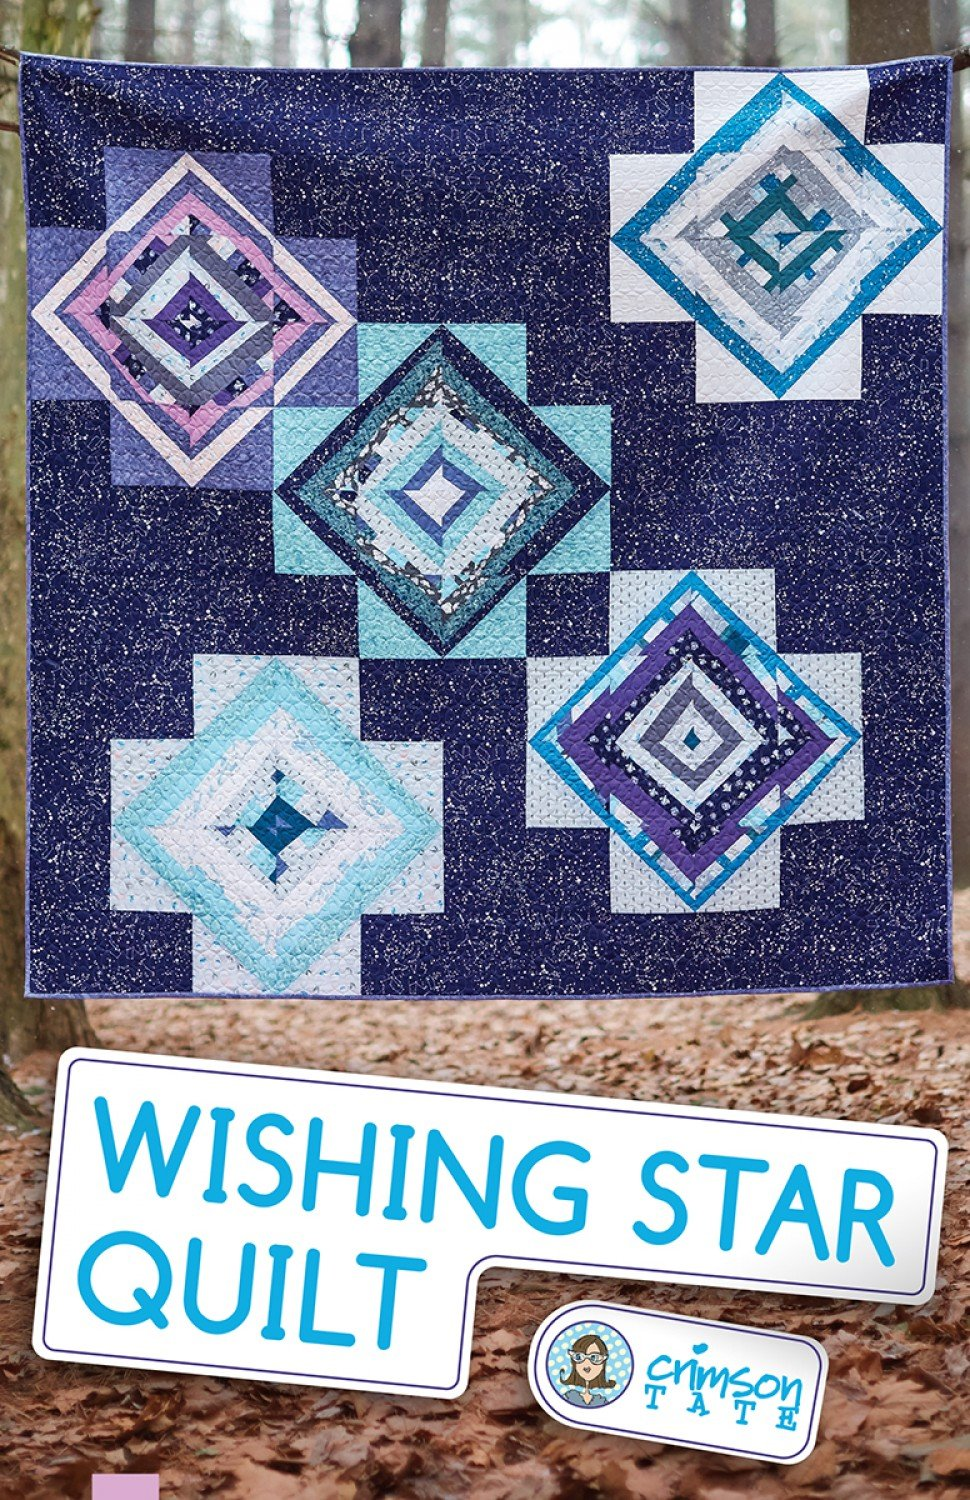 Wishing Star Quilt